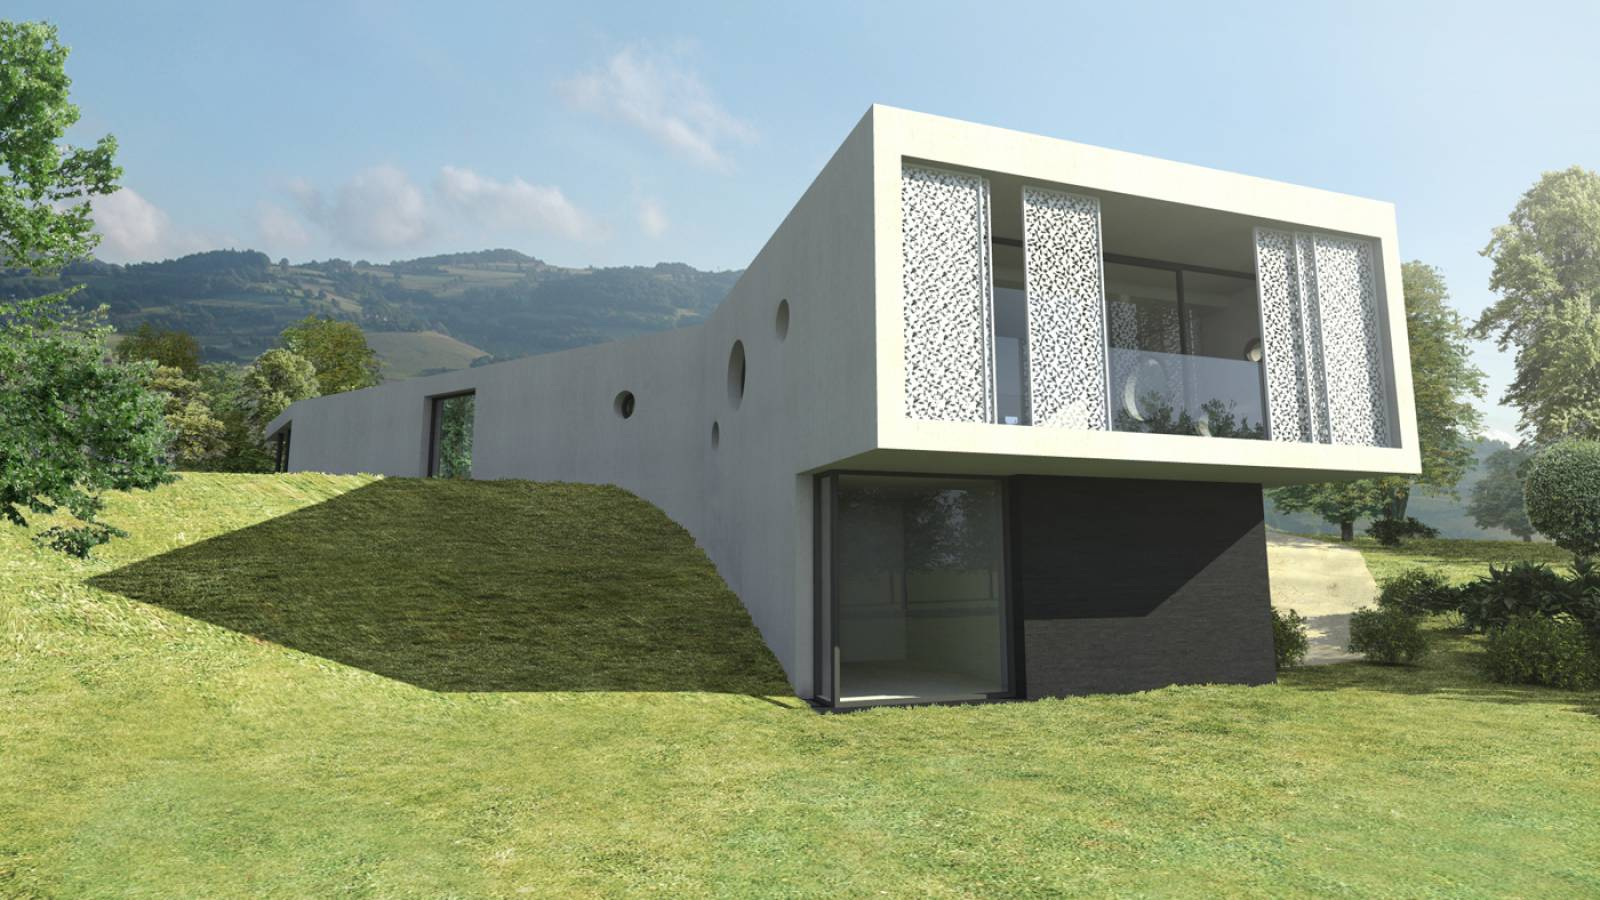 maison d'architecte design à Saint Fortunat